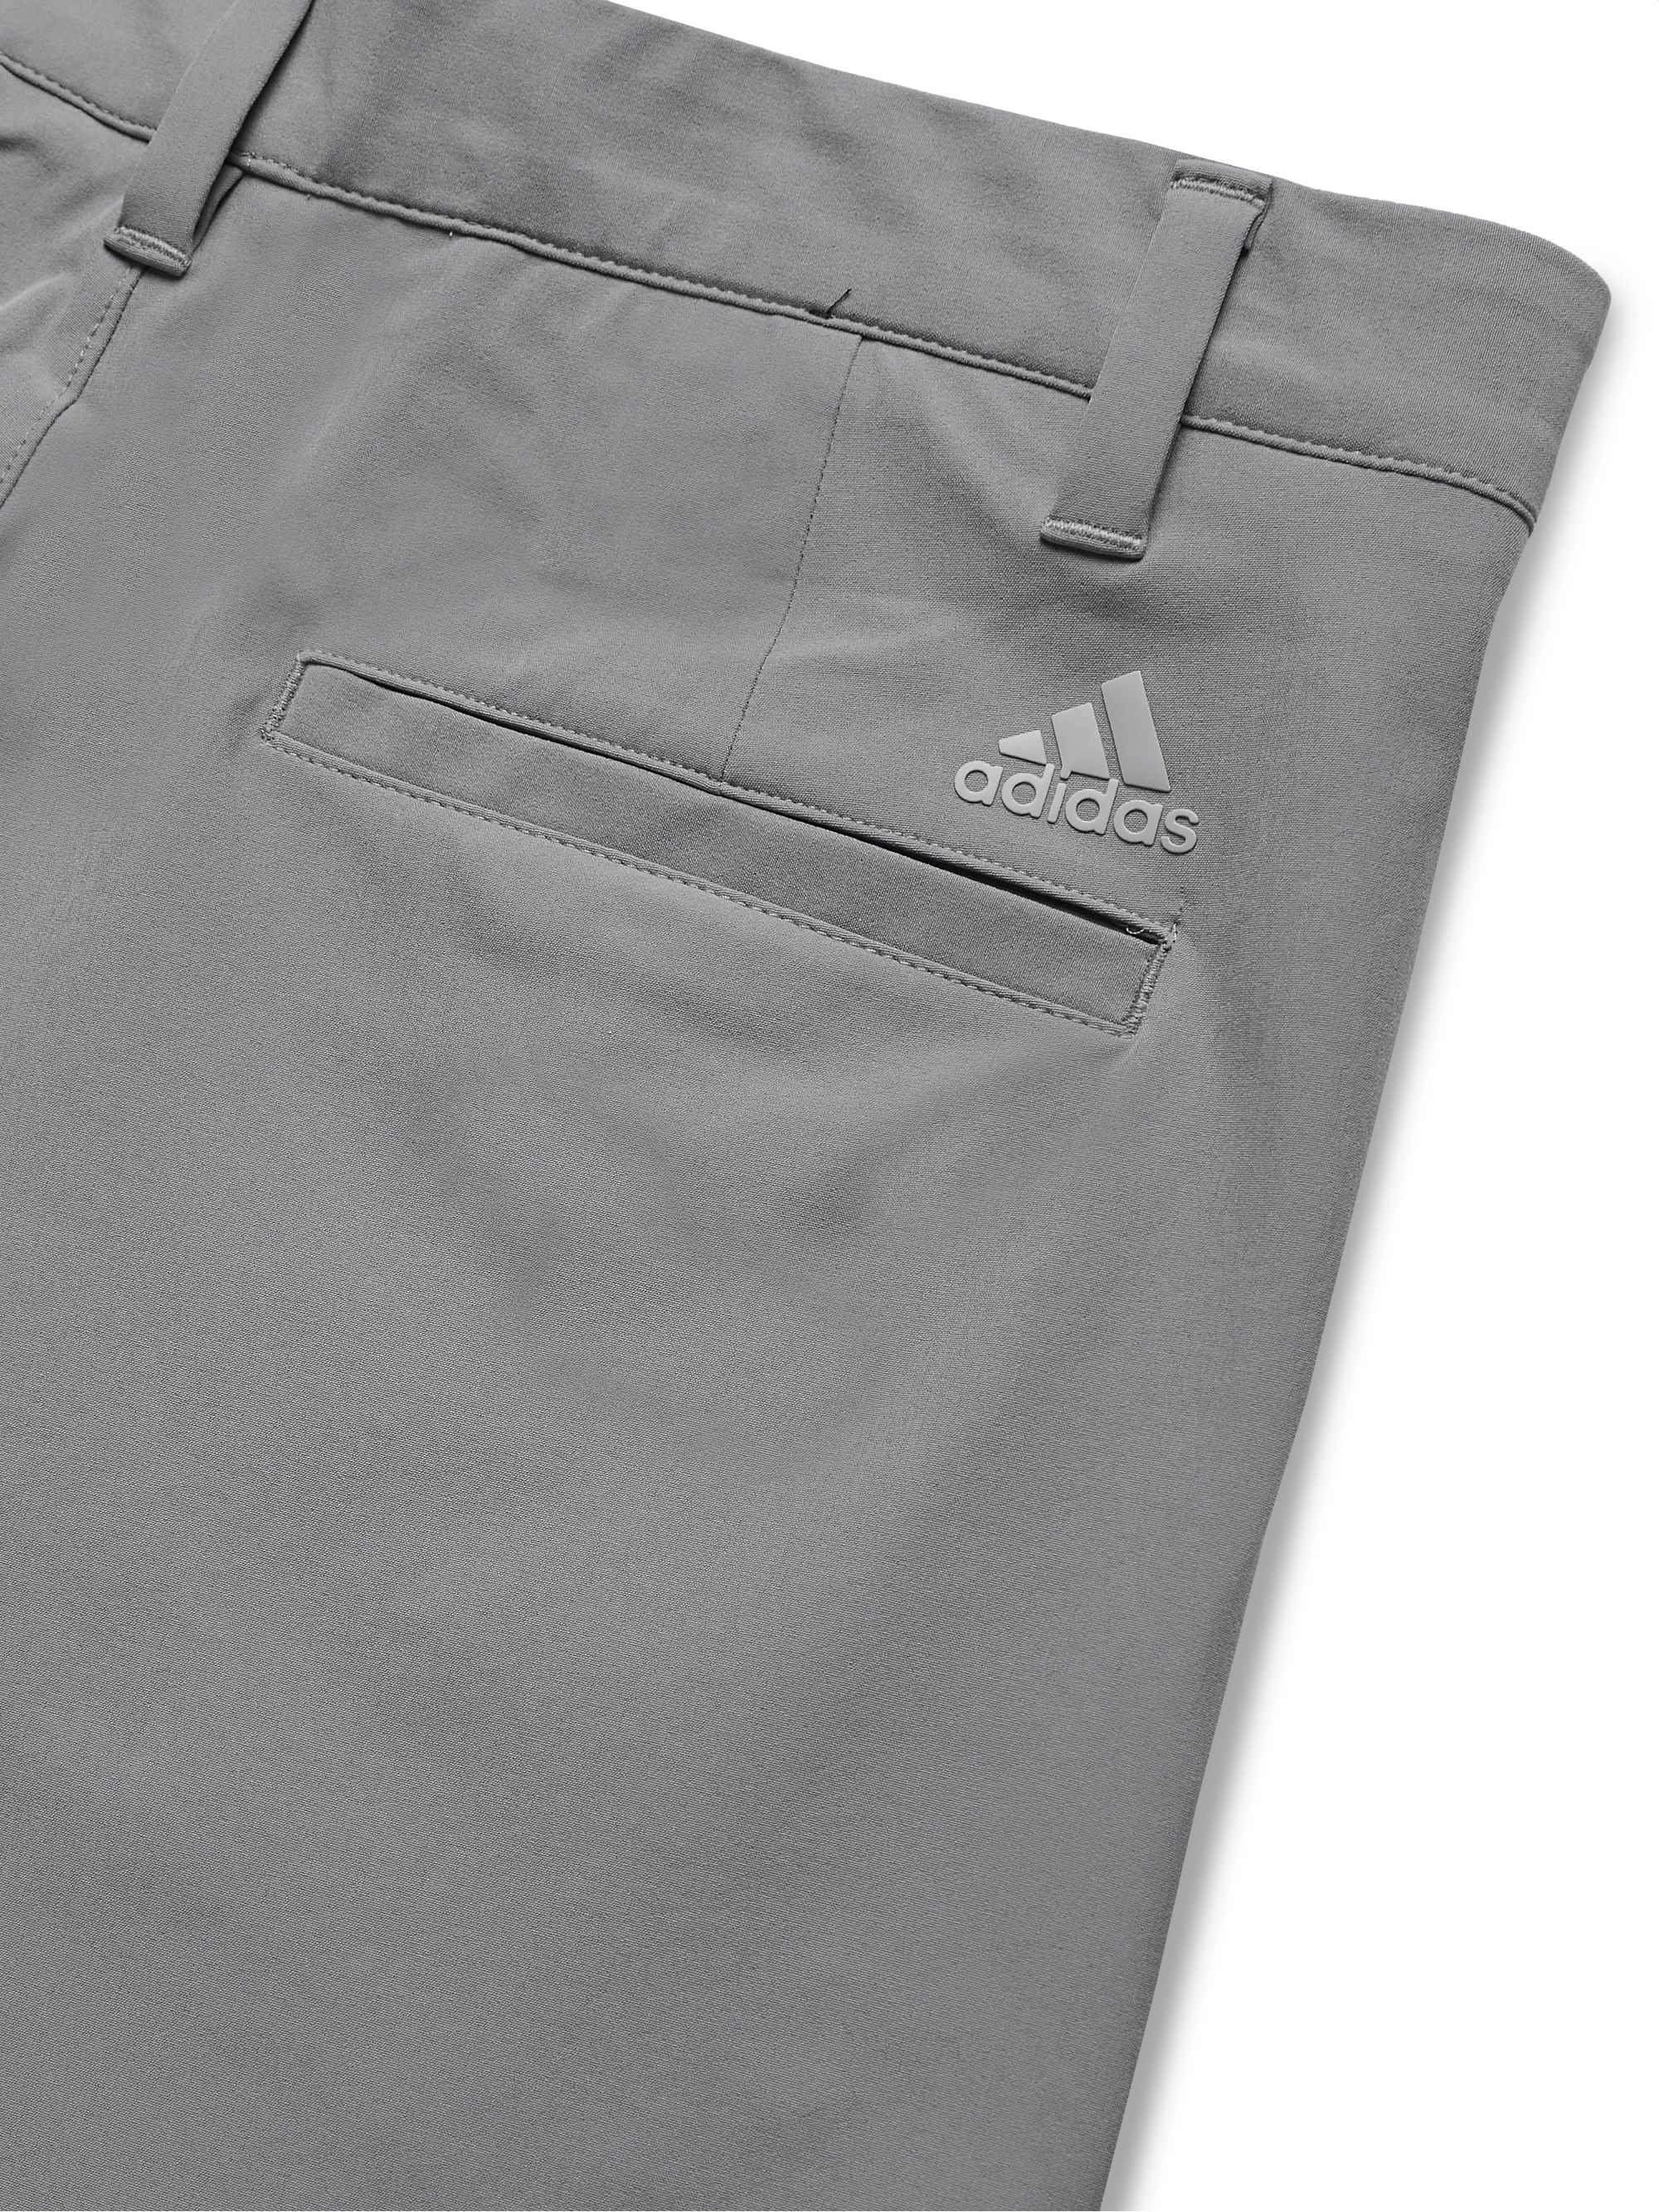 ADIDAS GOLF Ultimate365 Recycled Stretch-Shell Golf Shorts